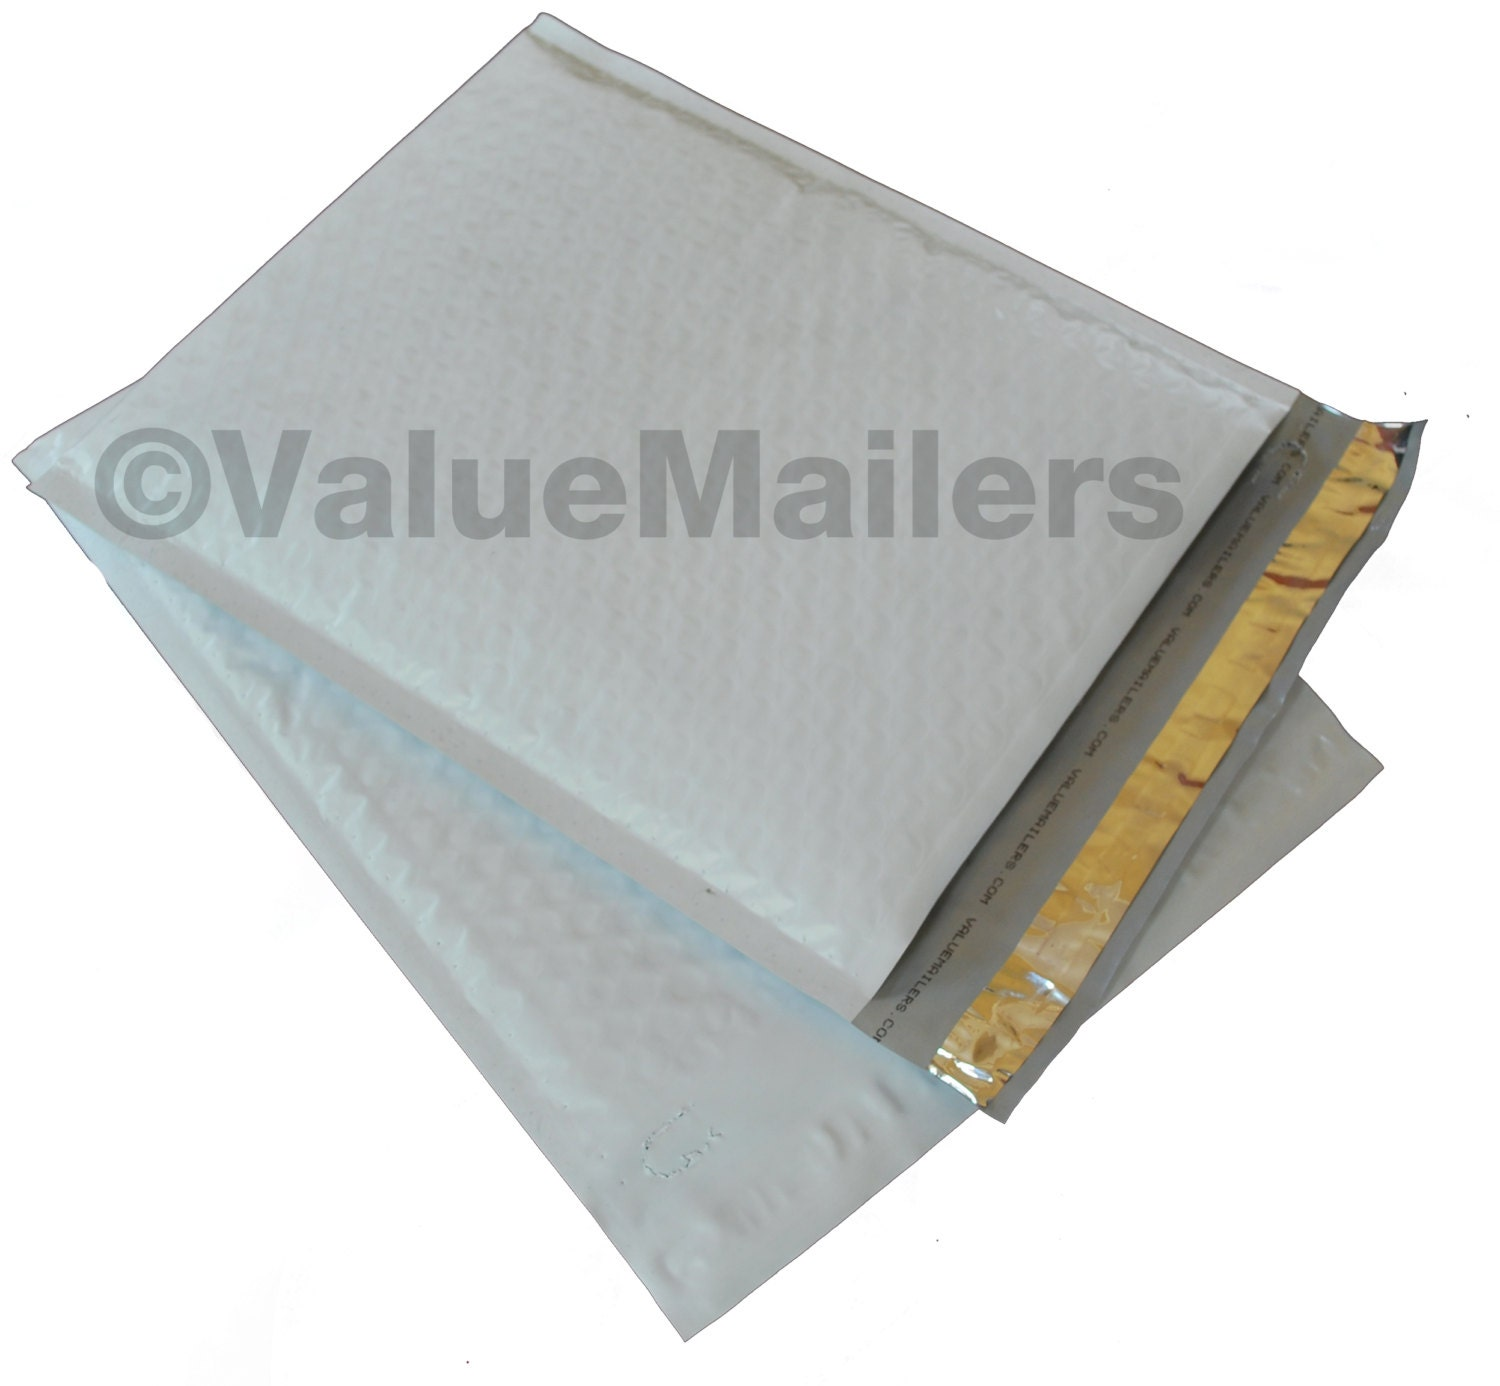 50 #2 Poly Bubble Mailers 8.5x12 Padded Envelopes Self Sealing Bags //Recyclable